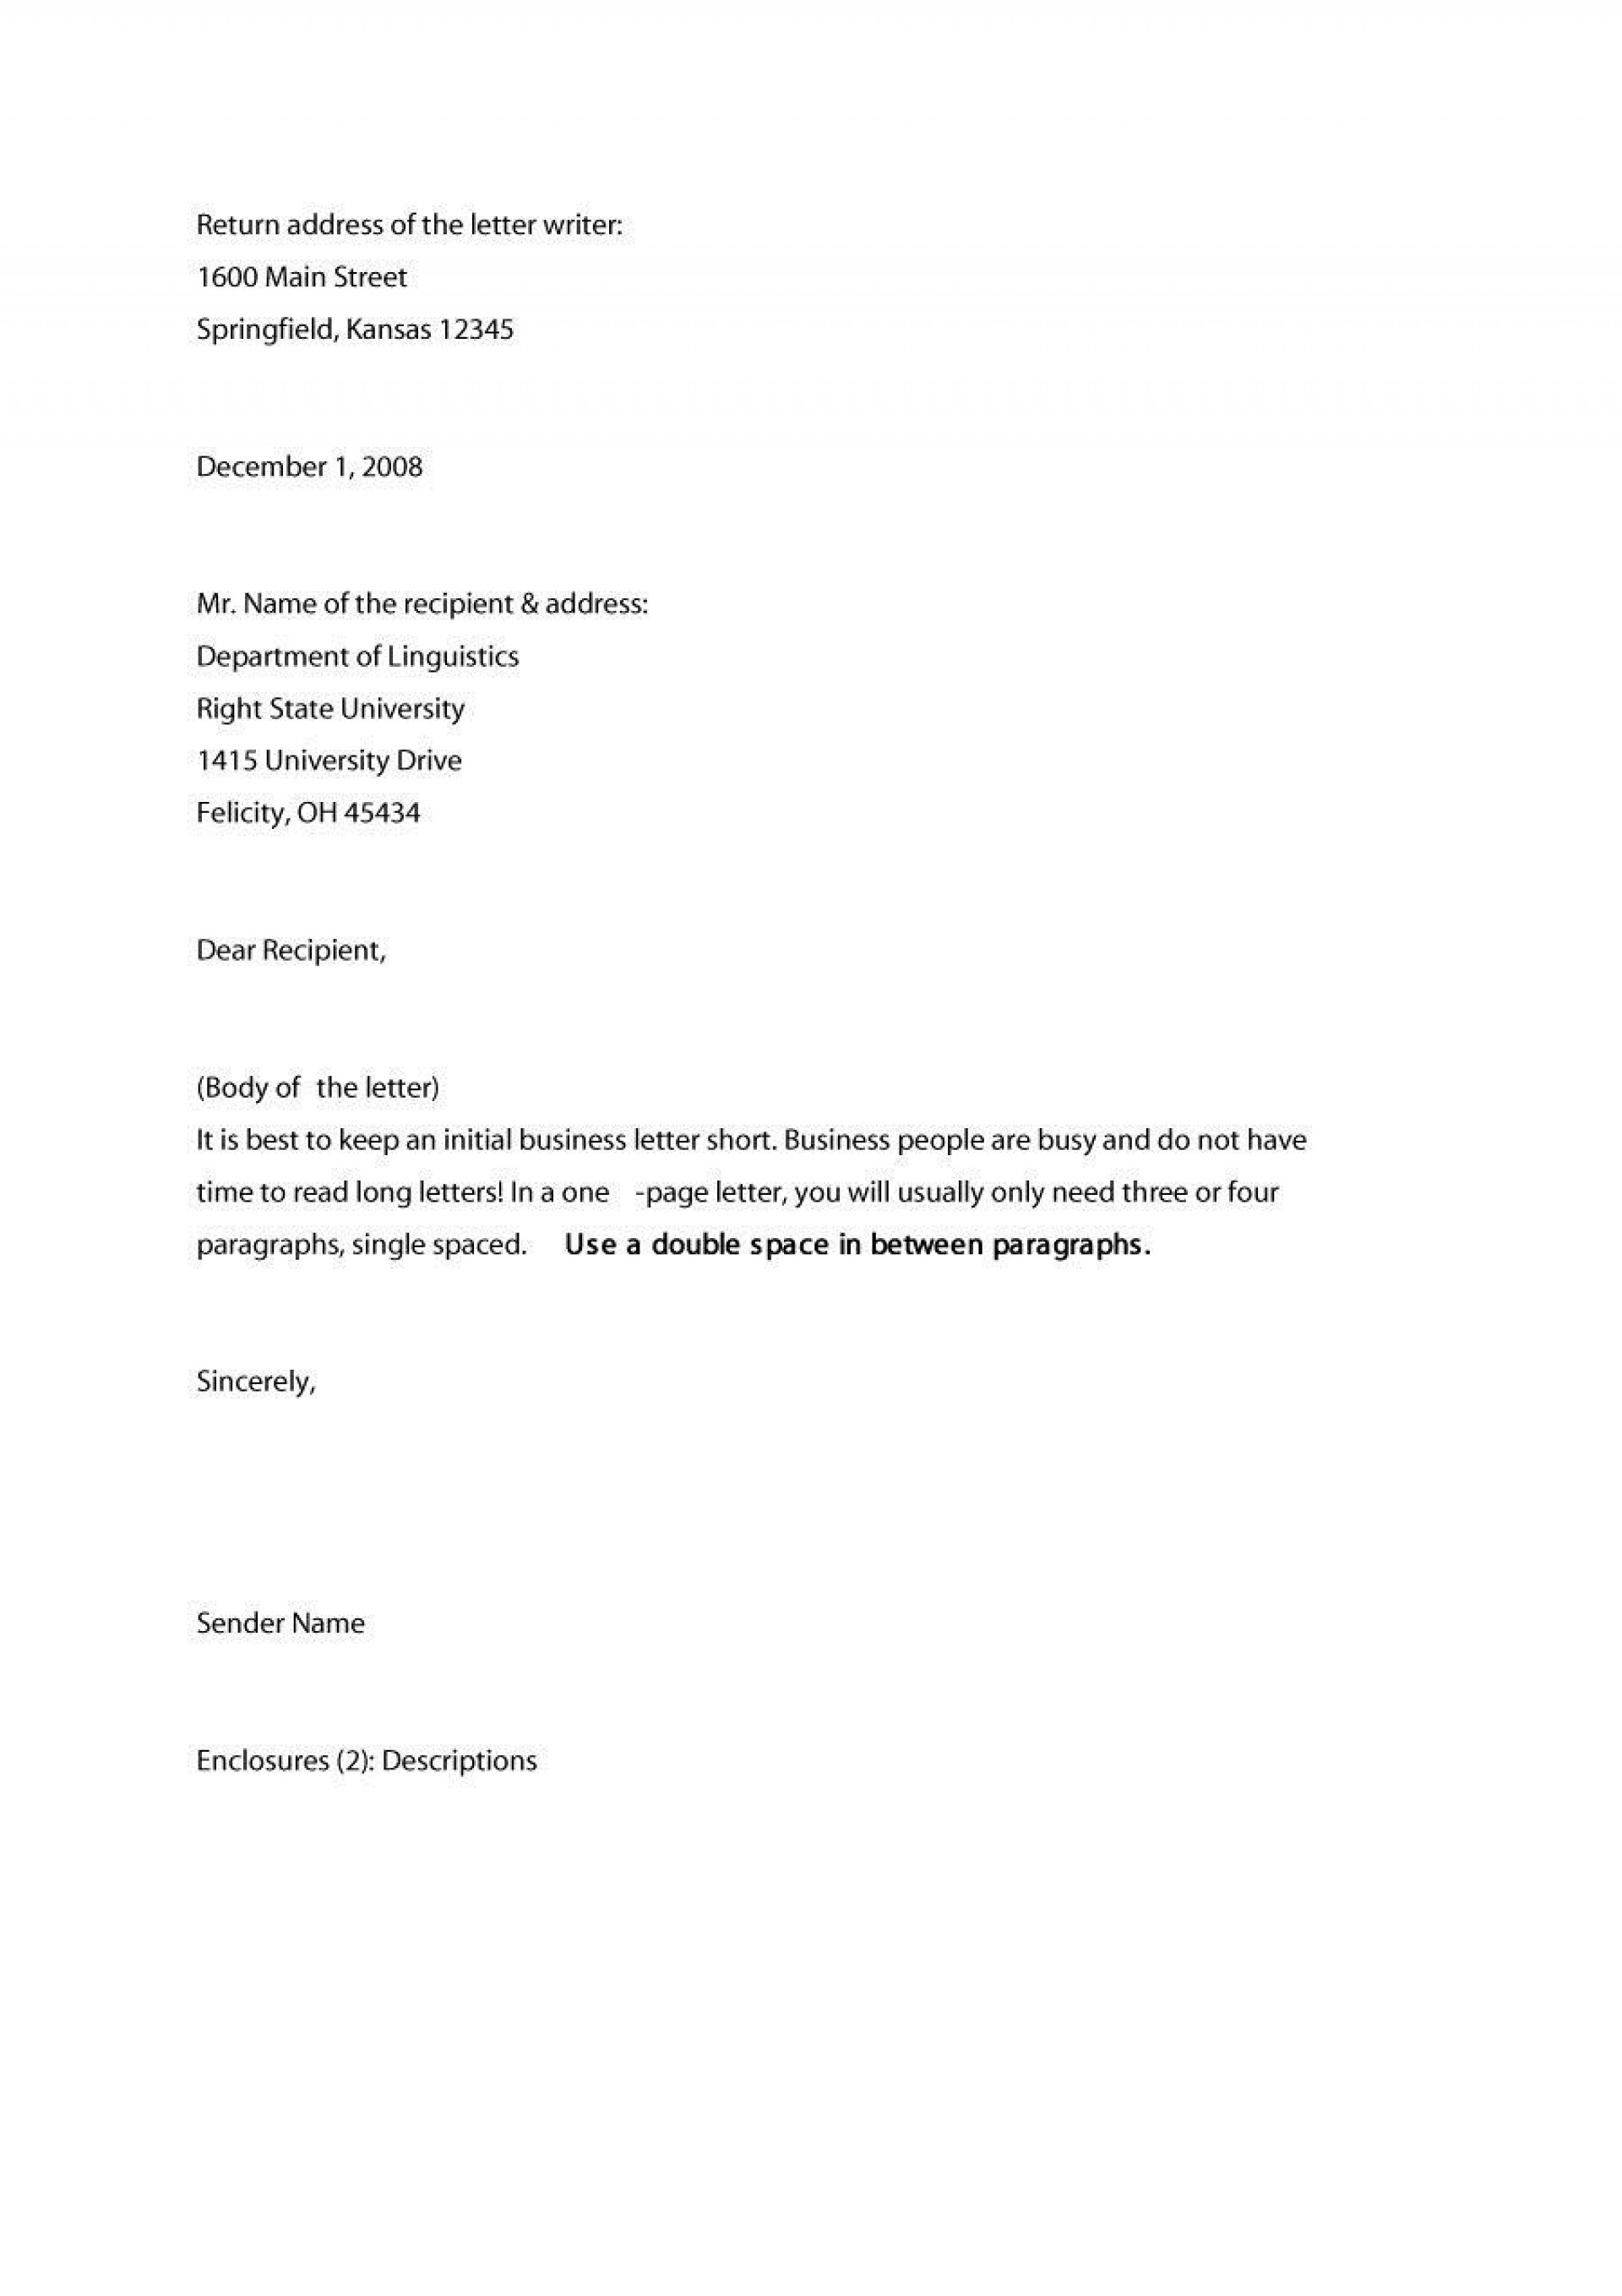 009 Astounding Sample Busines Letter Template Inspiration  Of Intent Formal Free1920